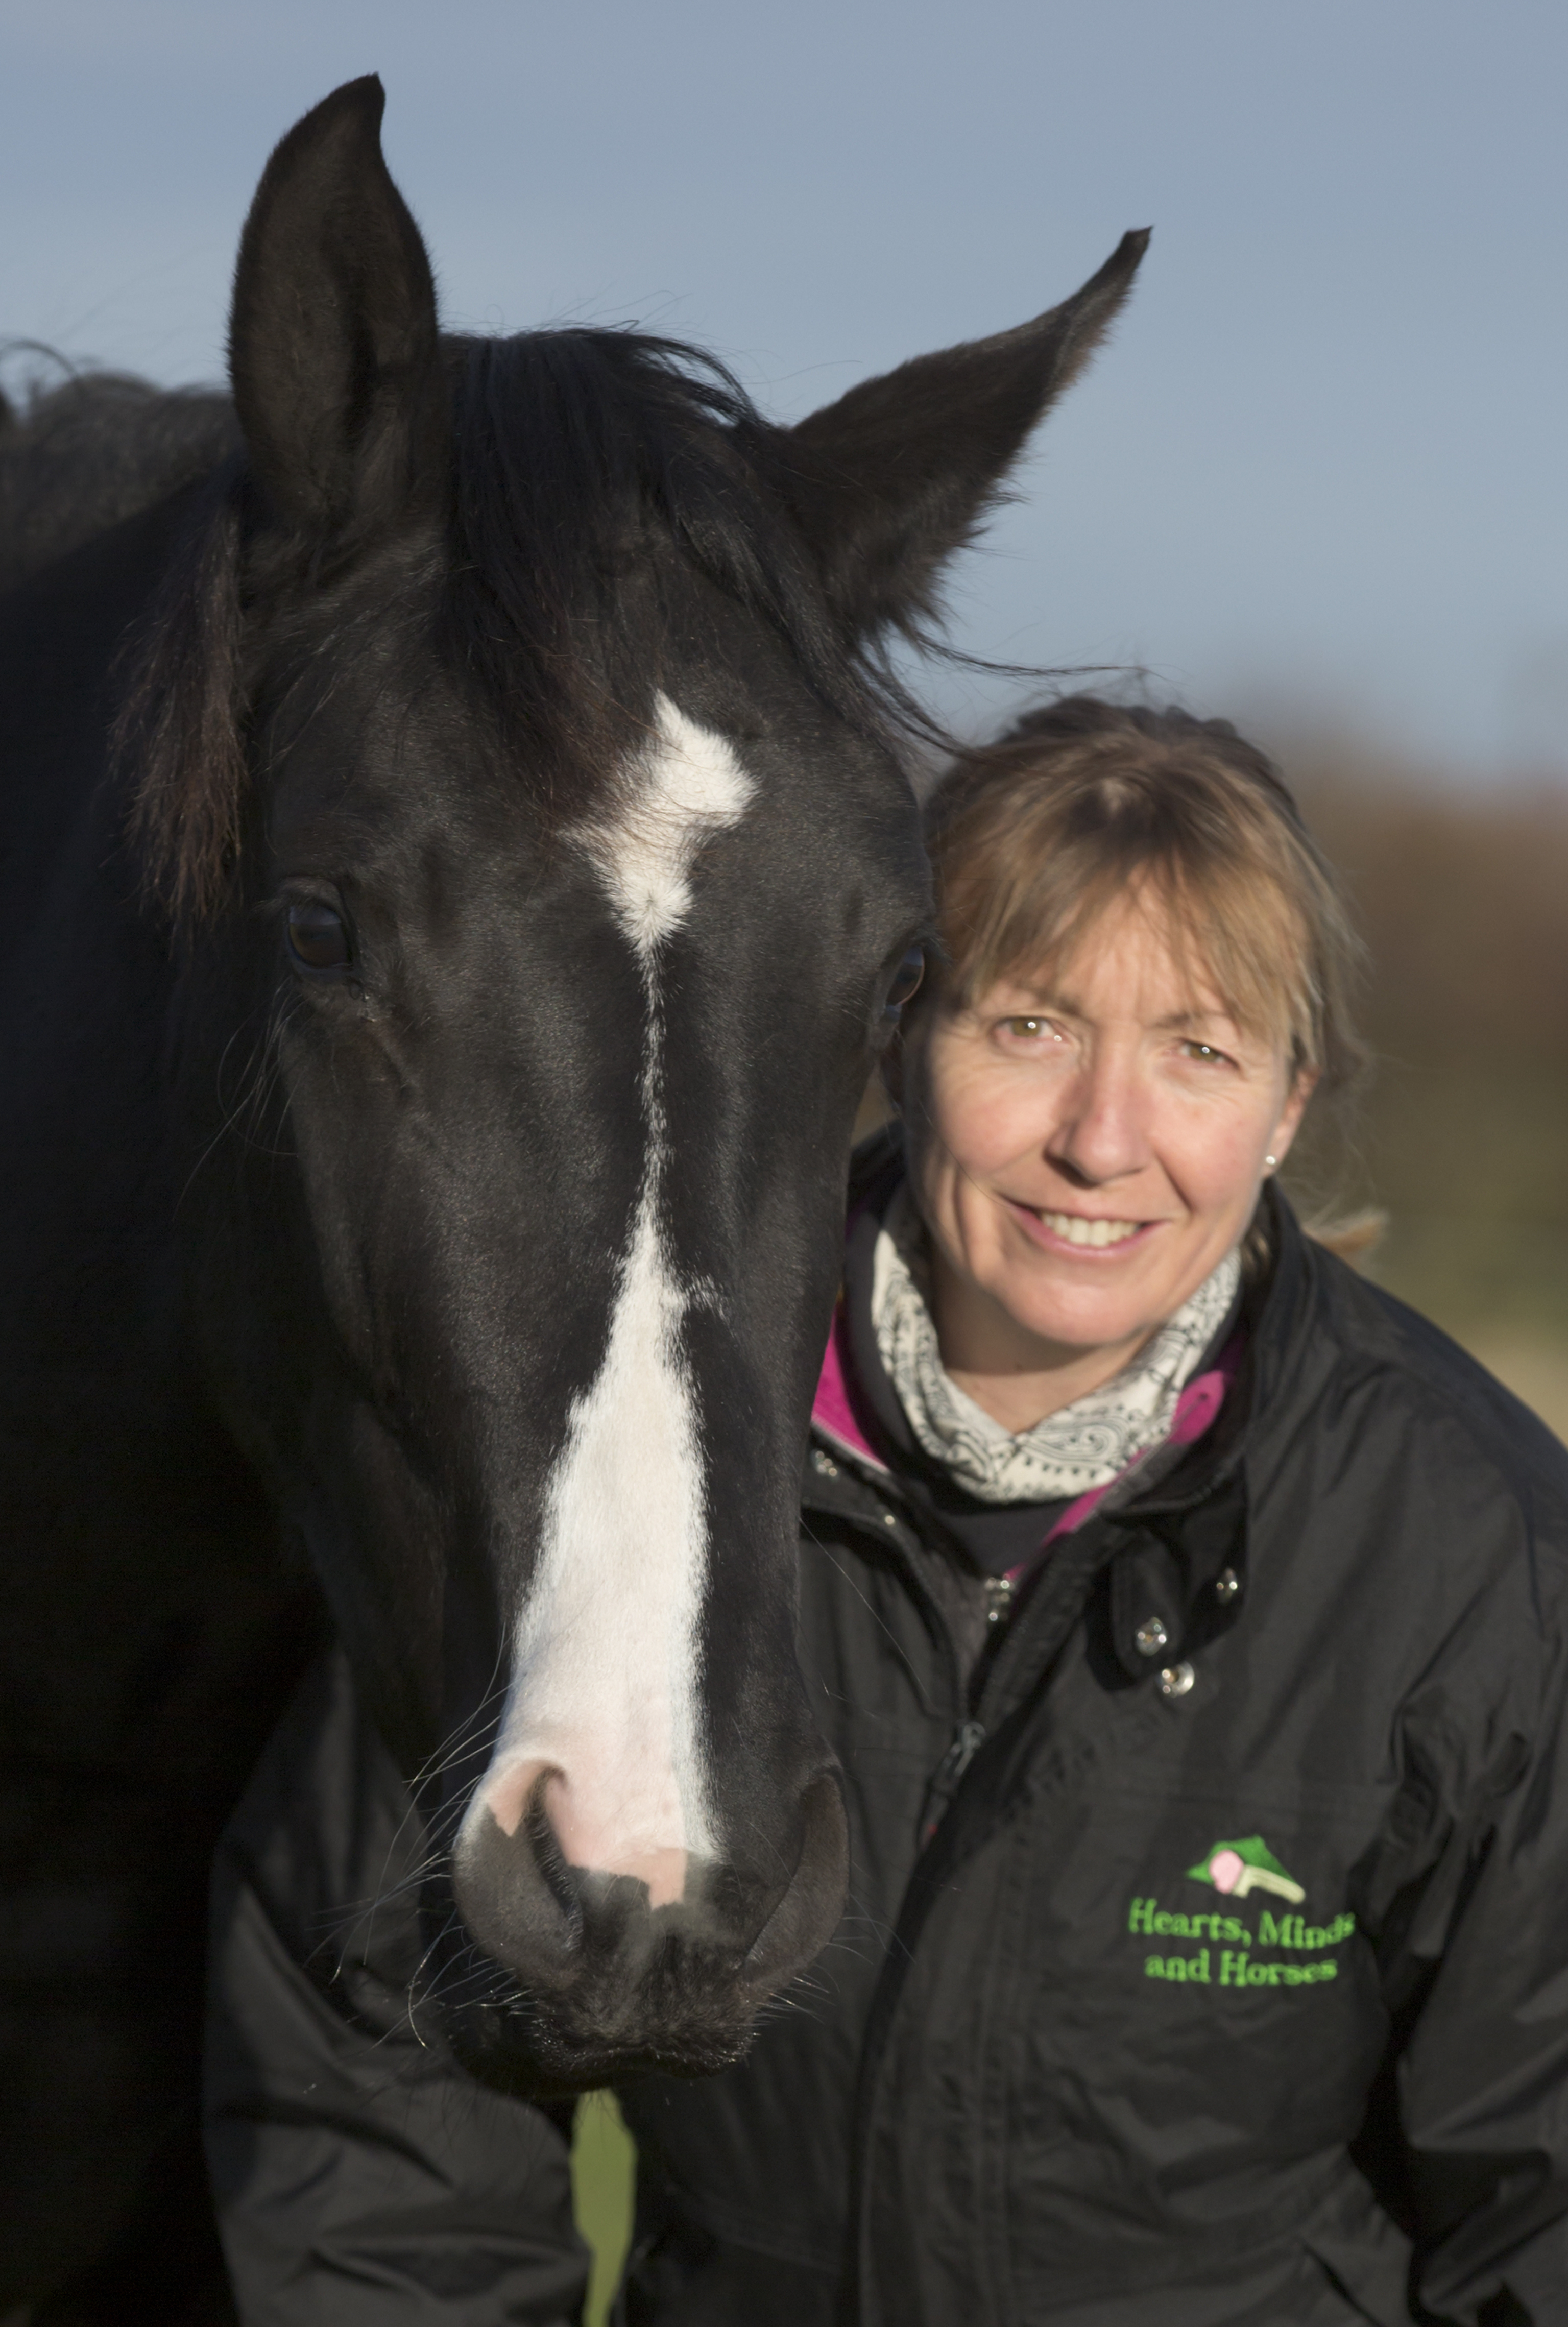 Counsellor, therapist and facilitator, Michelle, with horse